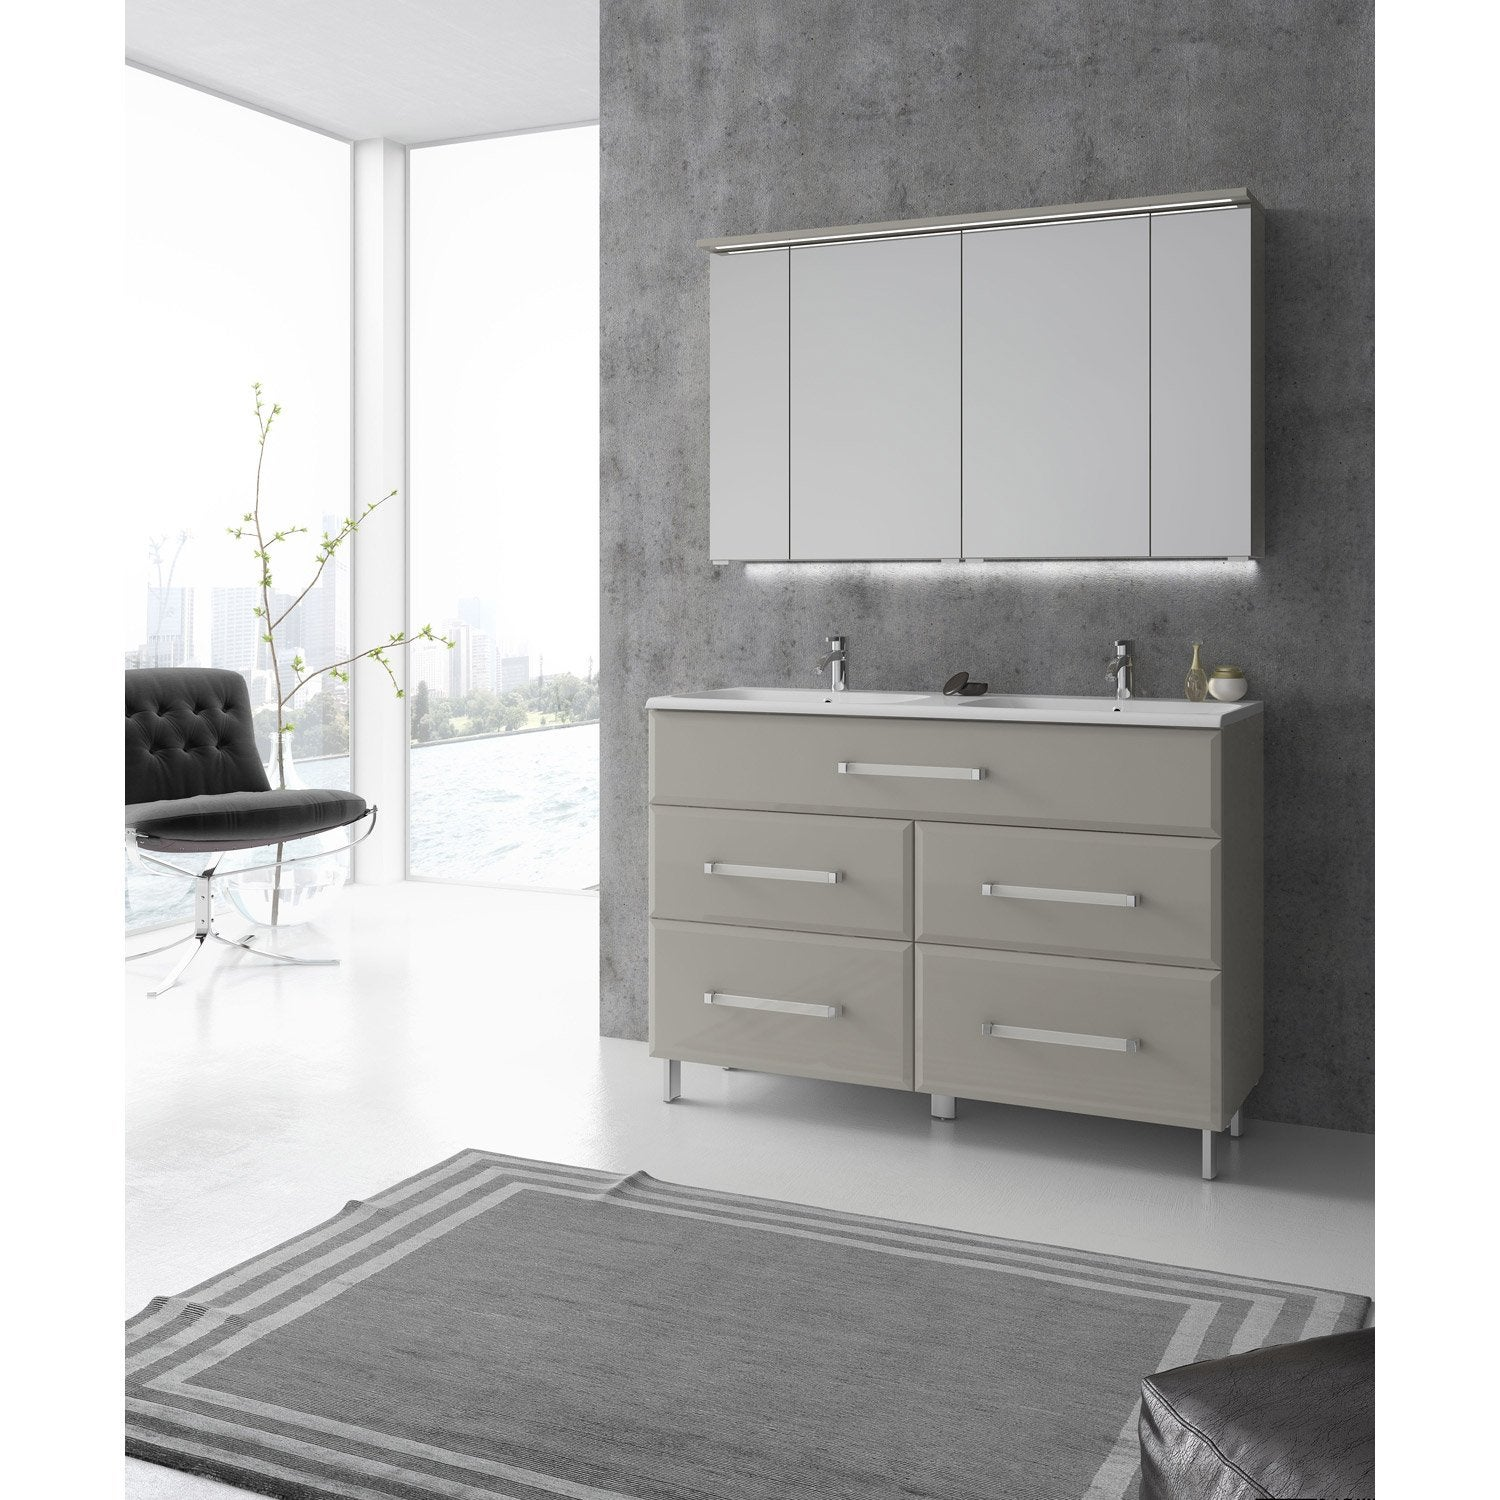 meuble de salle de bains plus de 120 beige opale leroy merlin. Black Bedroom Furniture Sets. Home Design Ideas